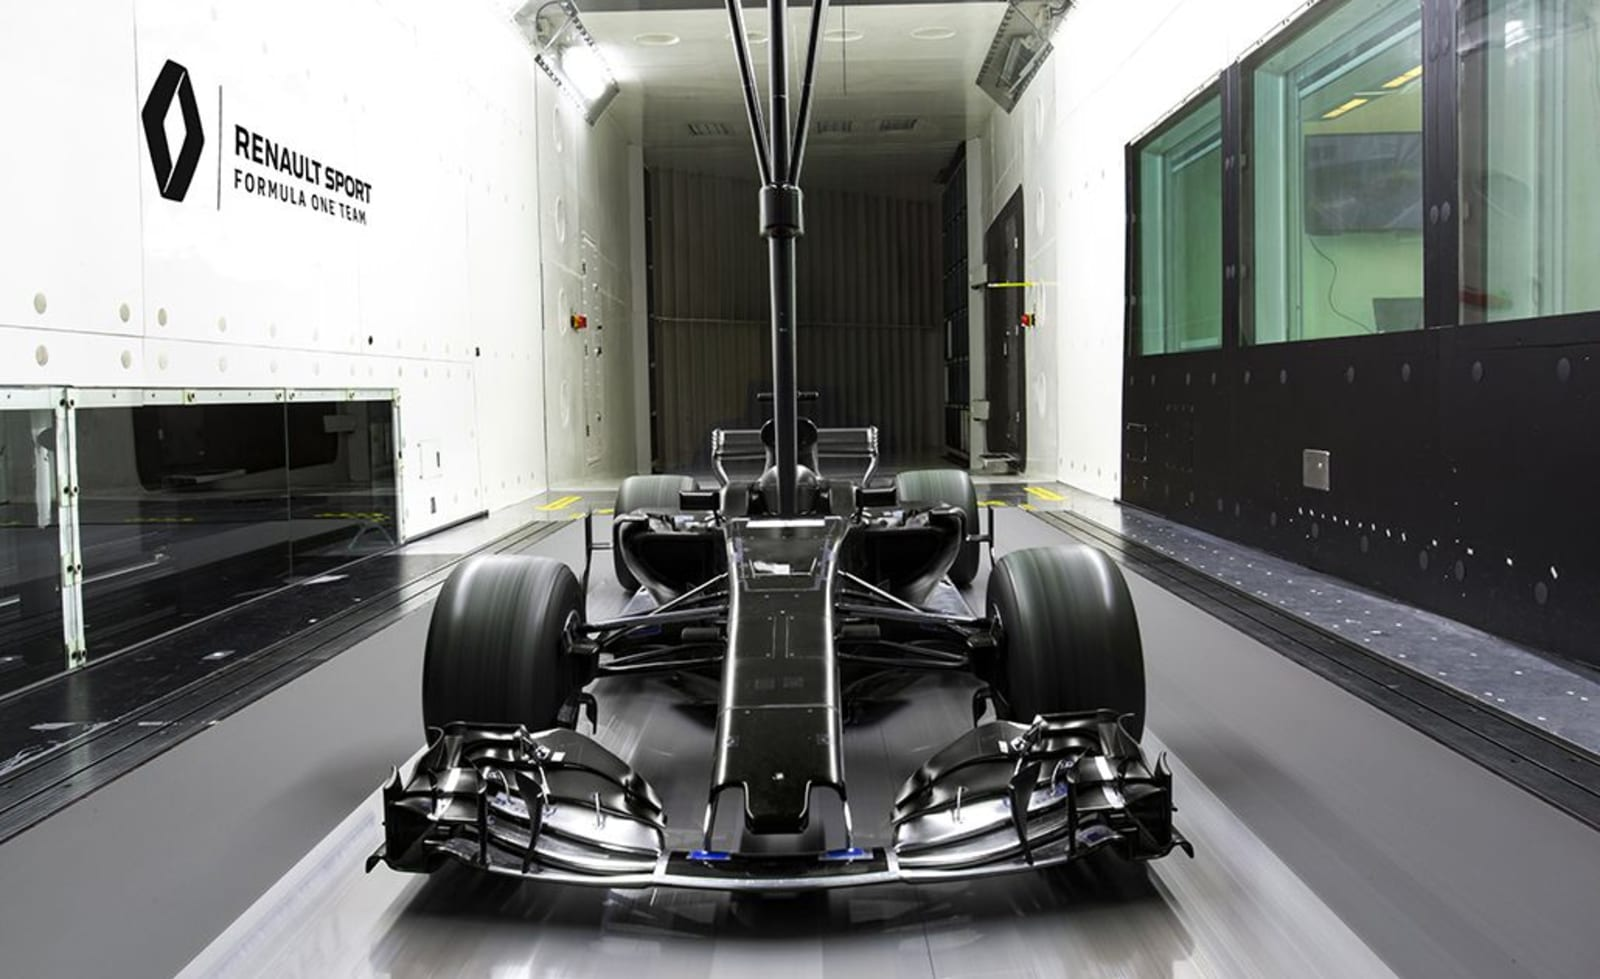 Renault Enstone wind tunnel